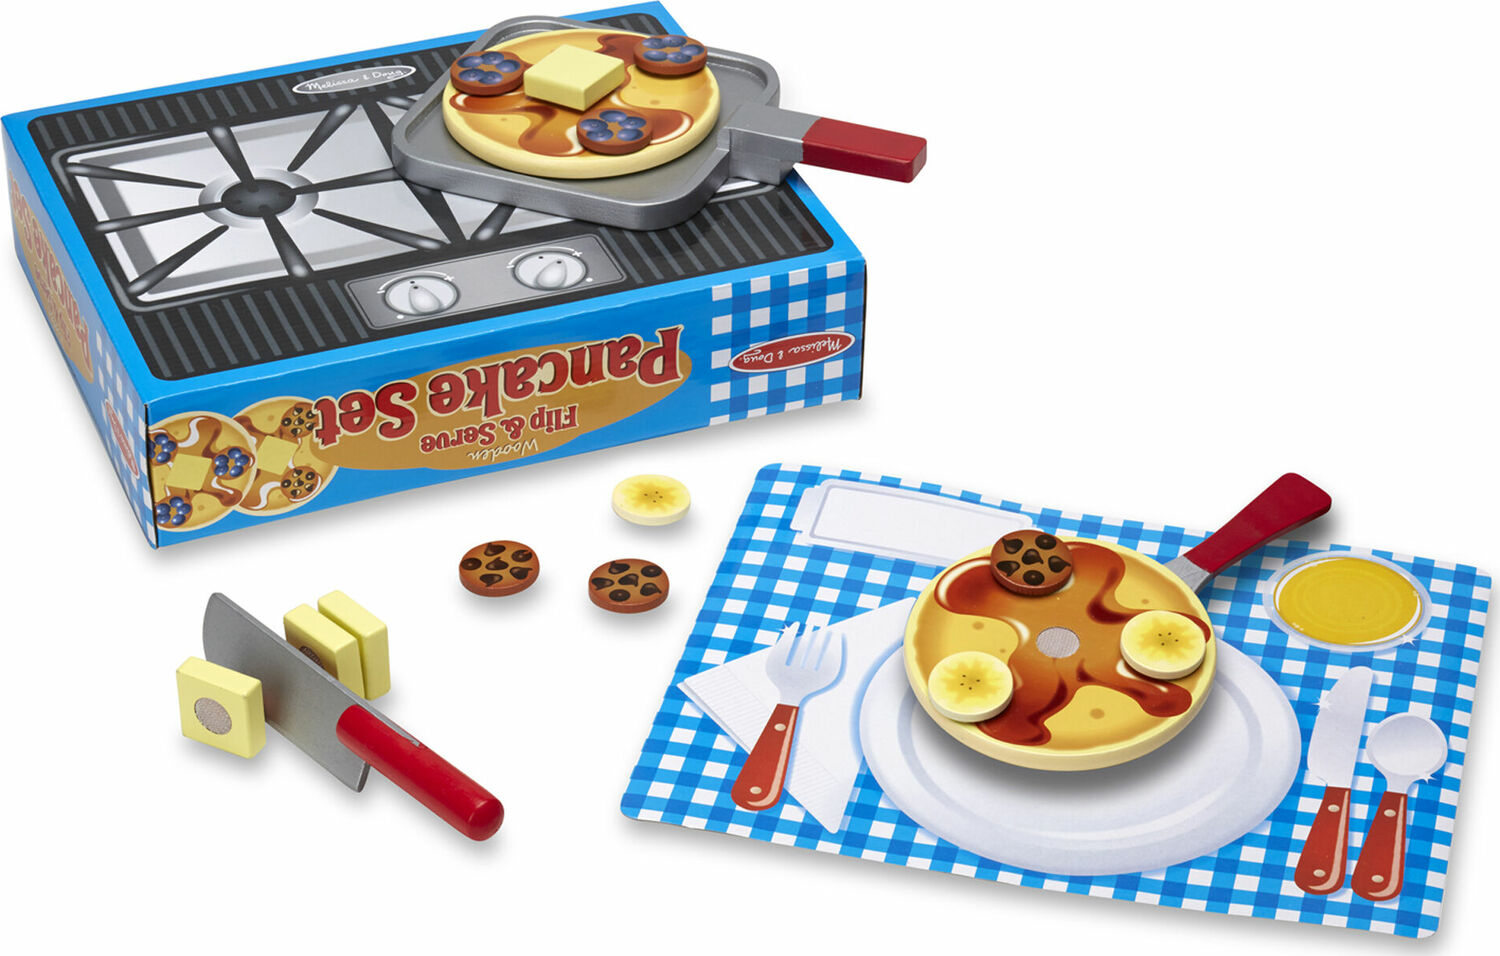 Wooden Flip and Serve Pancake Set